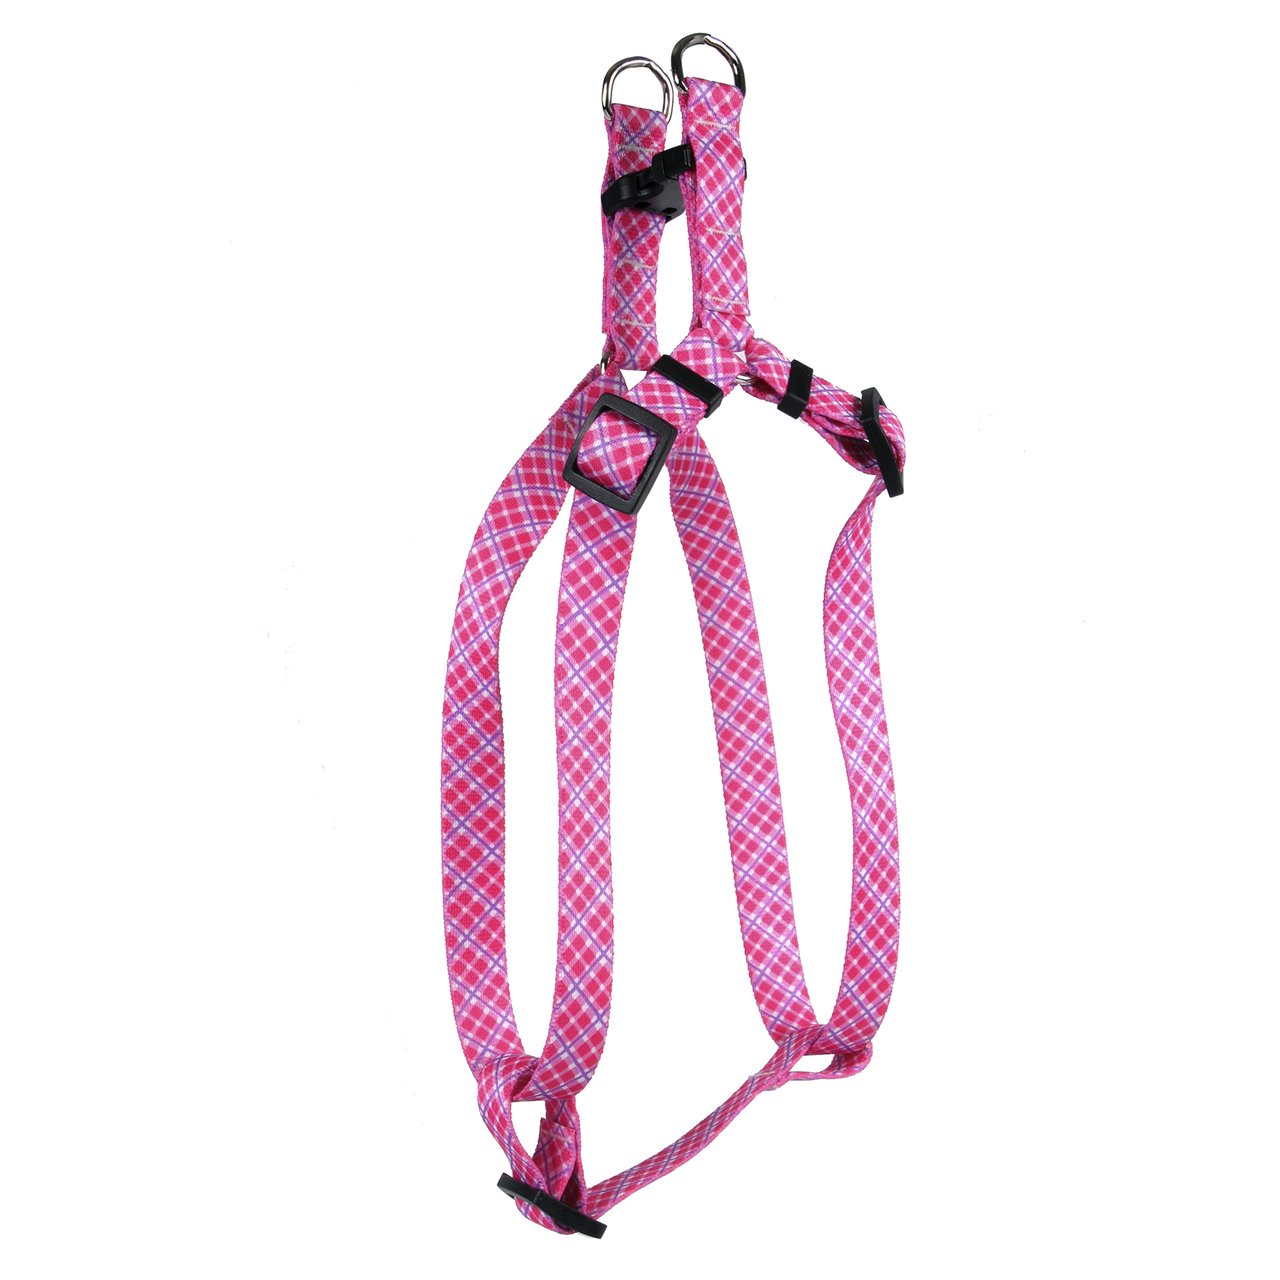 Yellow Dog Design Standard Step-in Harness, Pink & Purple Diagonal Plaid, Small 9'' - 15''